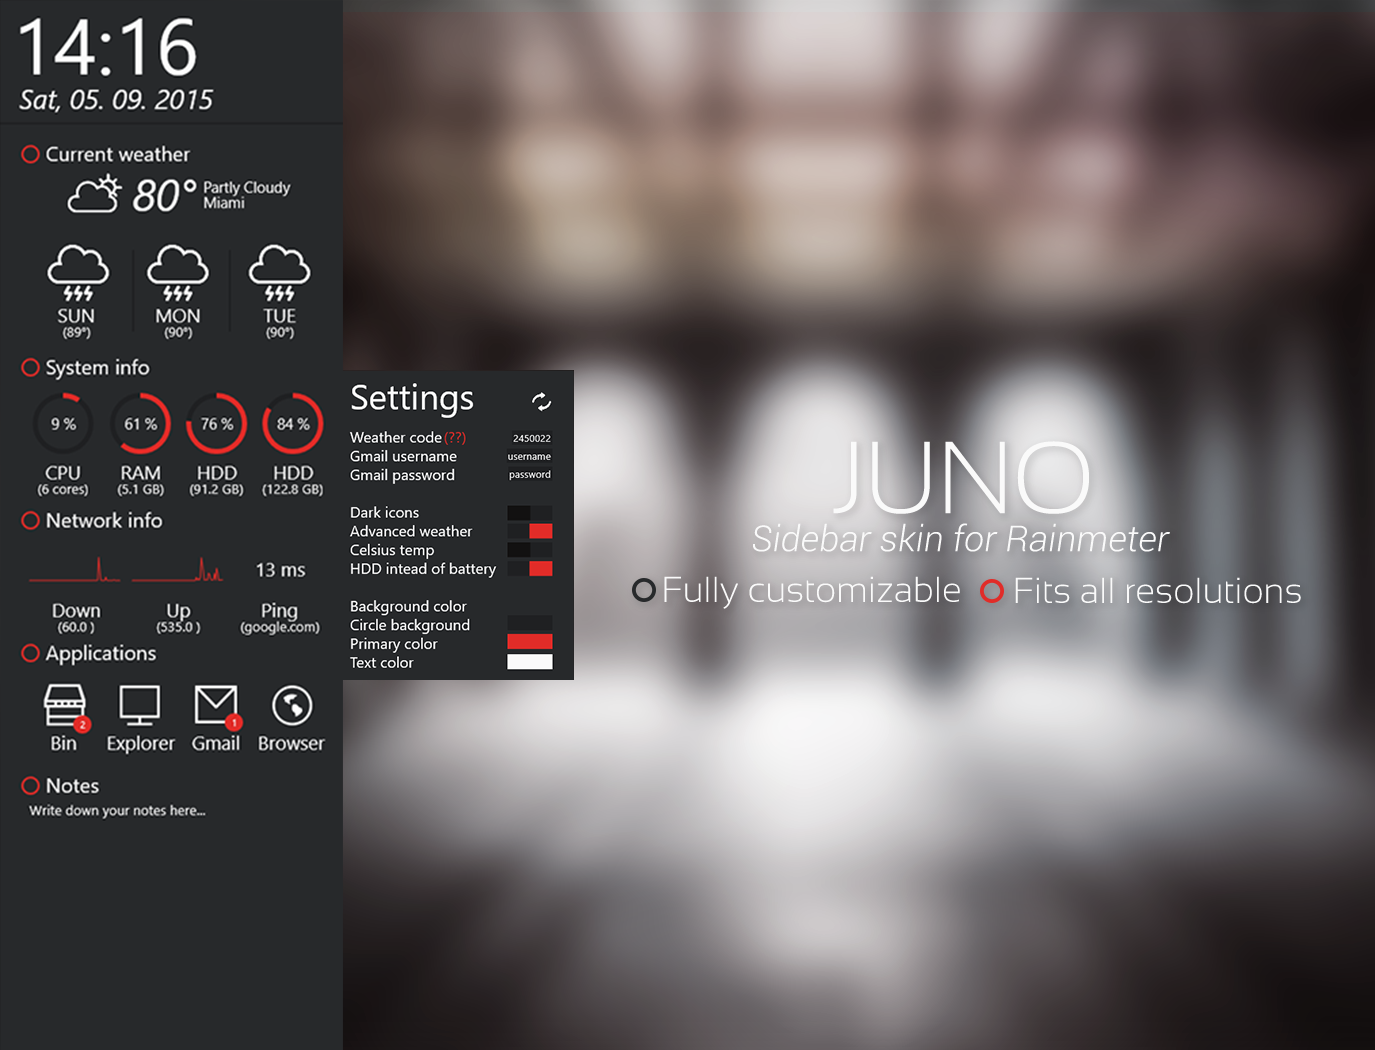 Gmail theme background not working